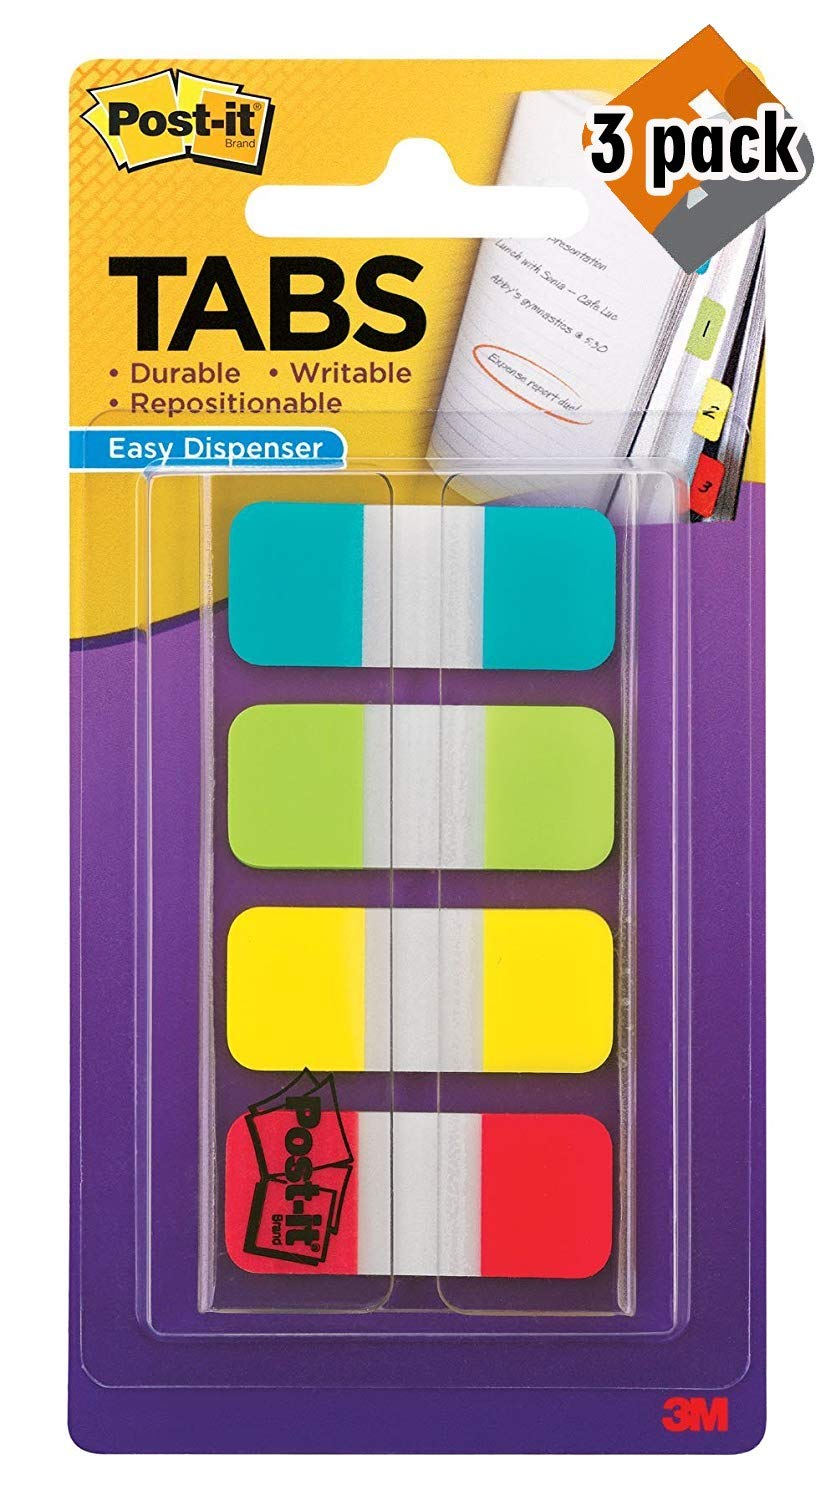 Post-it Tabs.625 in. Solid, Aqua, Lime, Yellow, Red, Durable, Writable, Repositionable, Sticks Securely, Removes Cleanly, 10/Color, 40/Dispenser, (676-ALYR) 3 Pack by Post-it